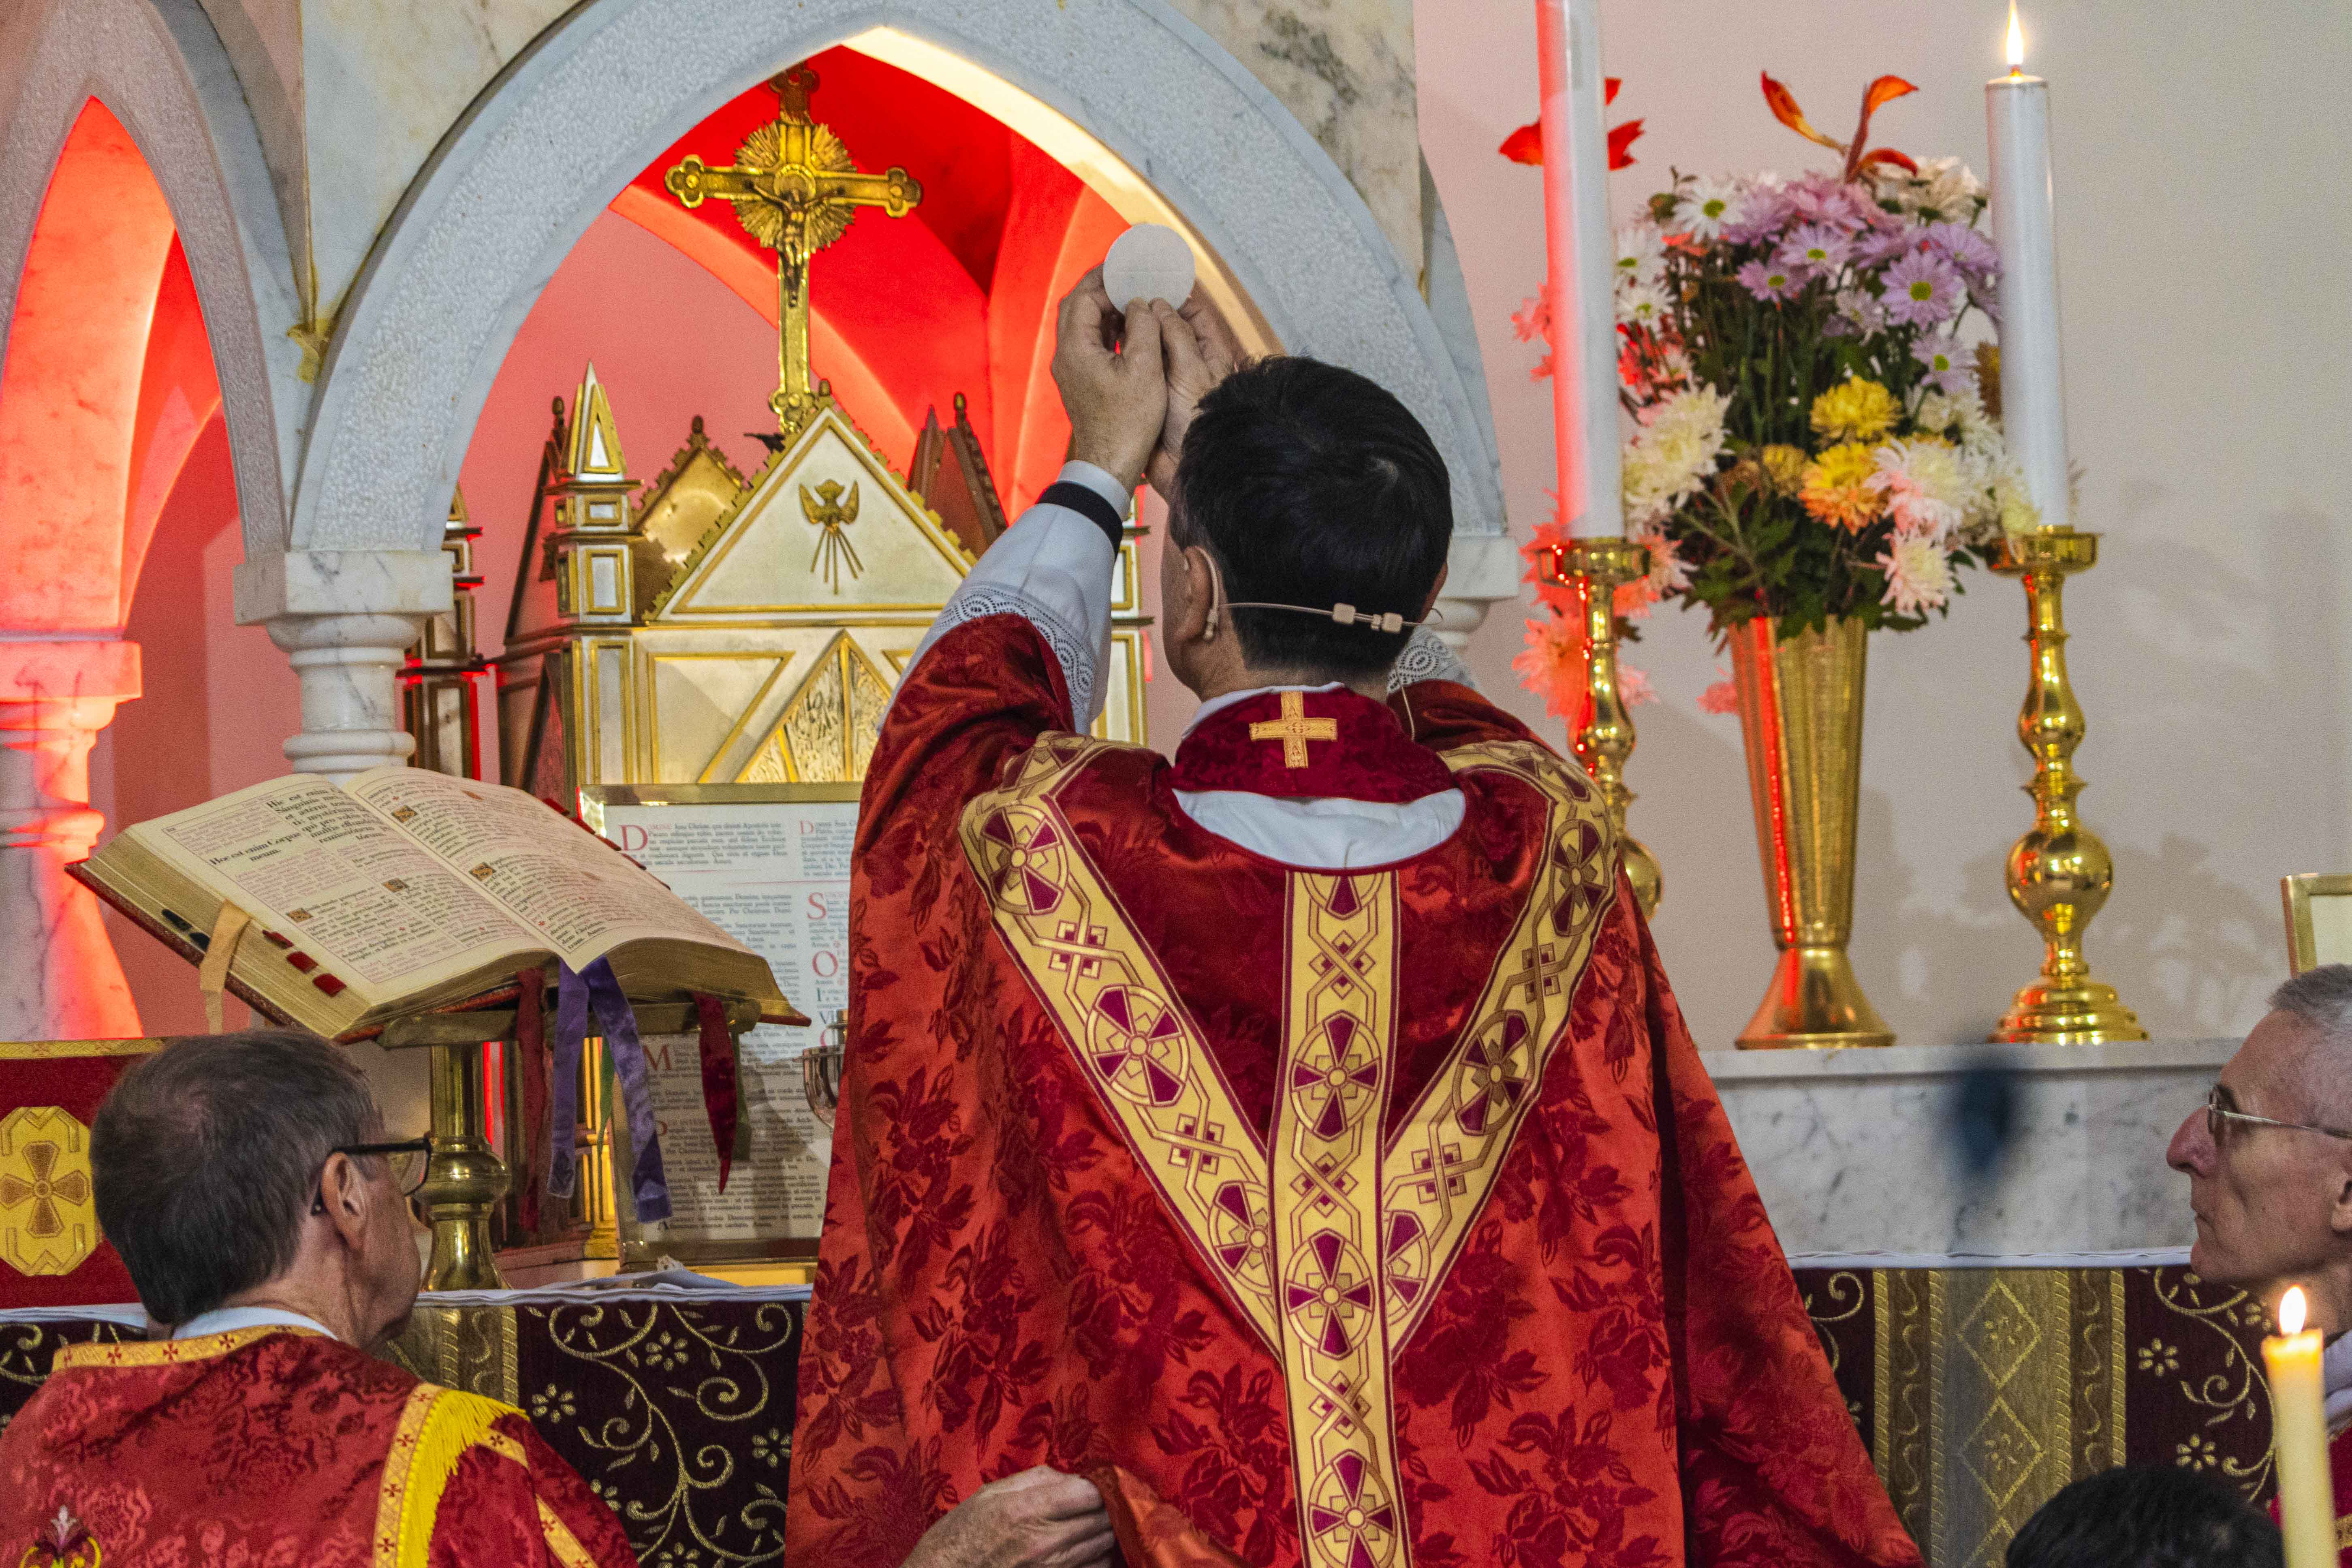 Fr Rowe elevates the Eucharist during the Mass to celebrate his 25 years of the priesthood. Photo: Josh Low.